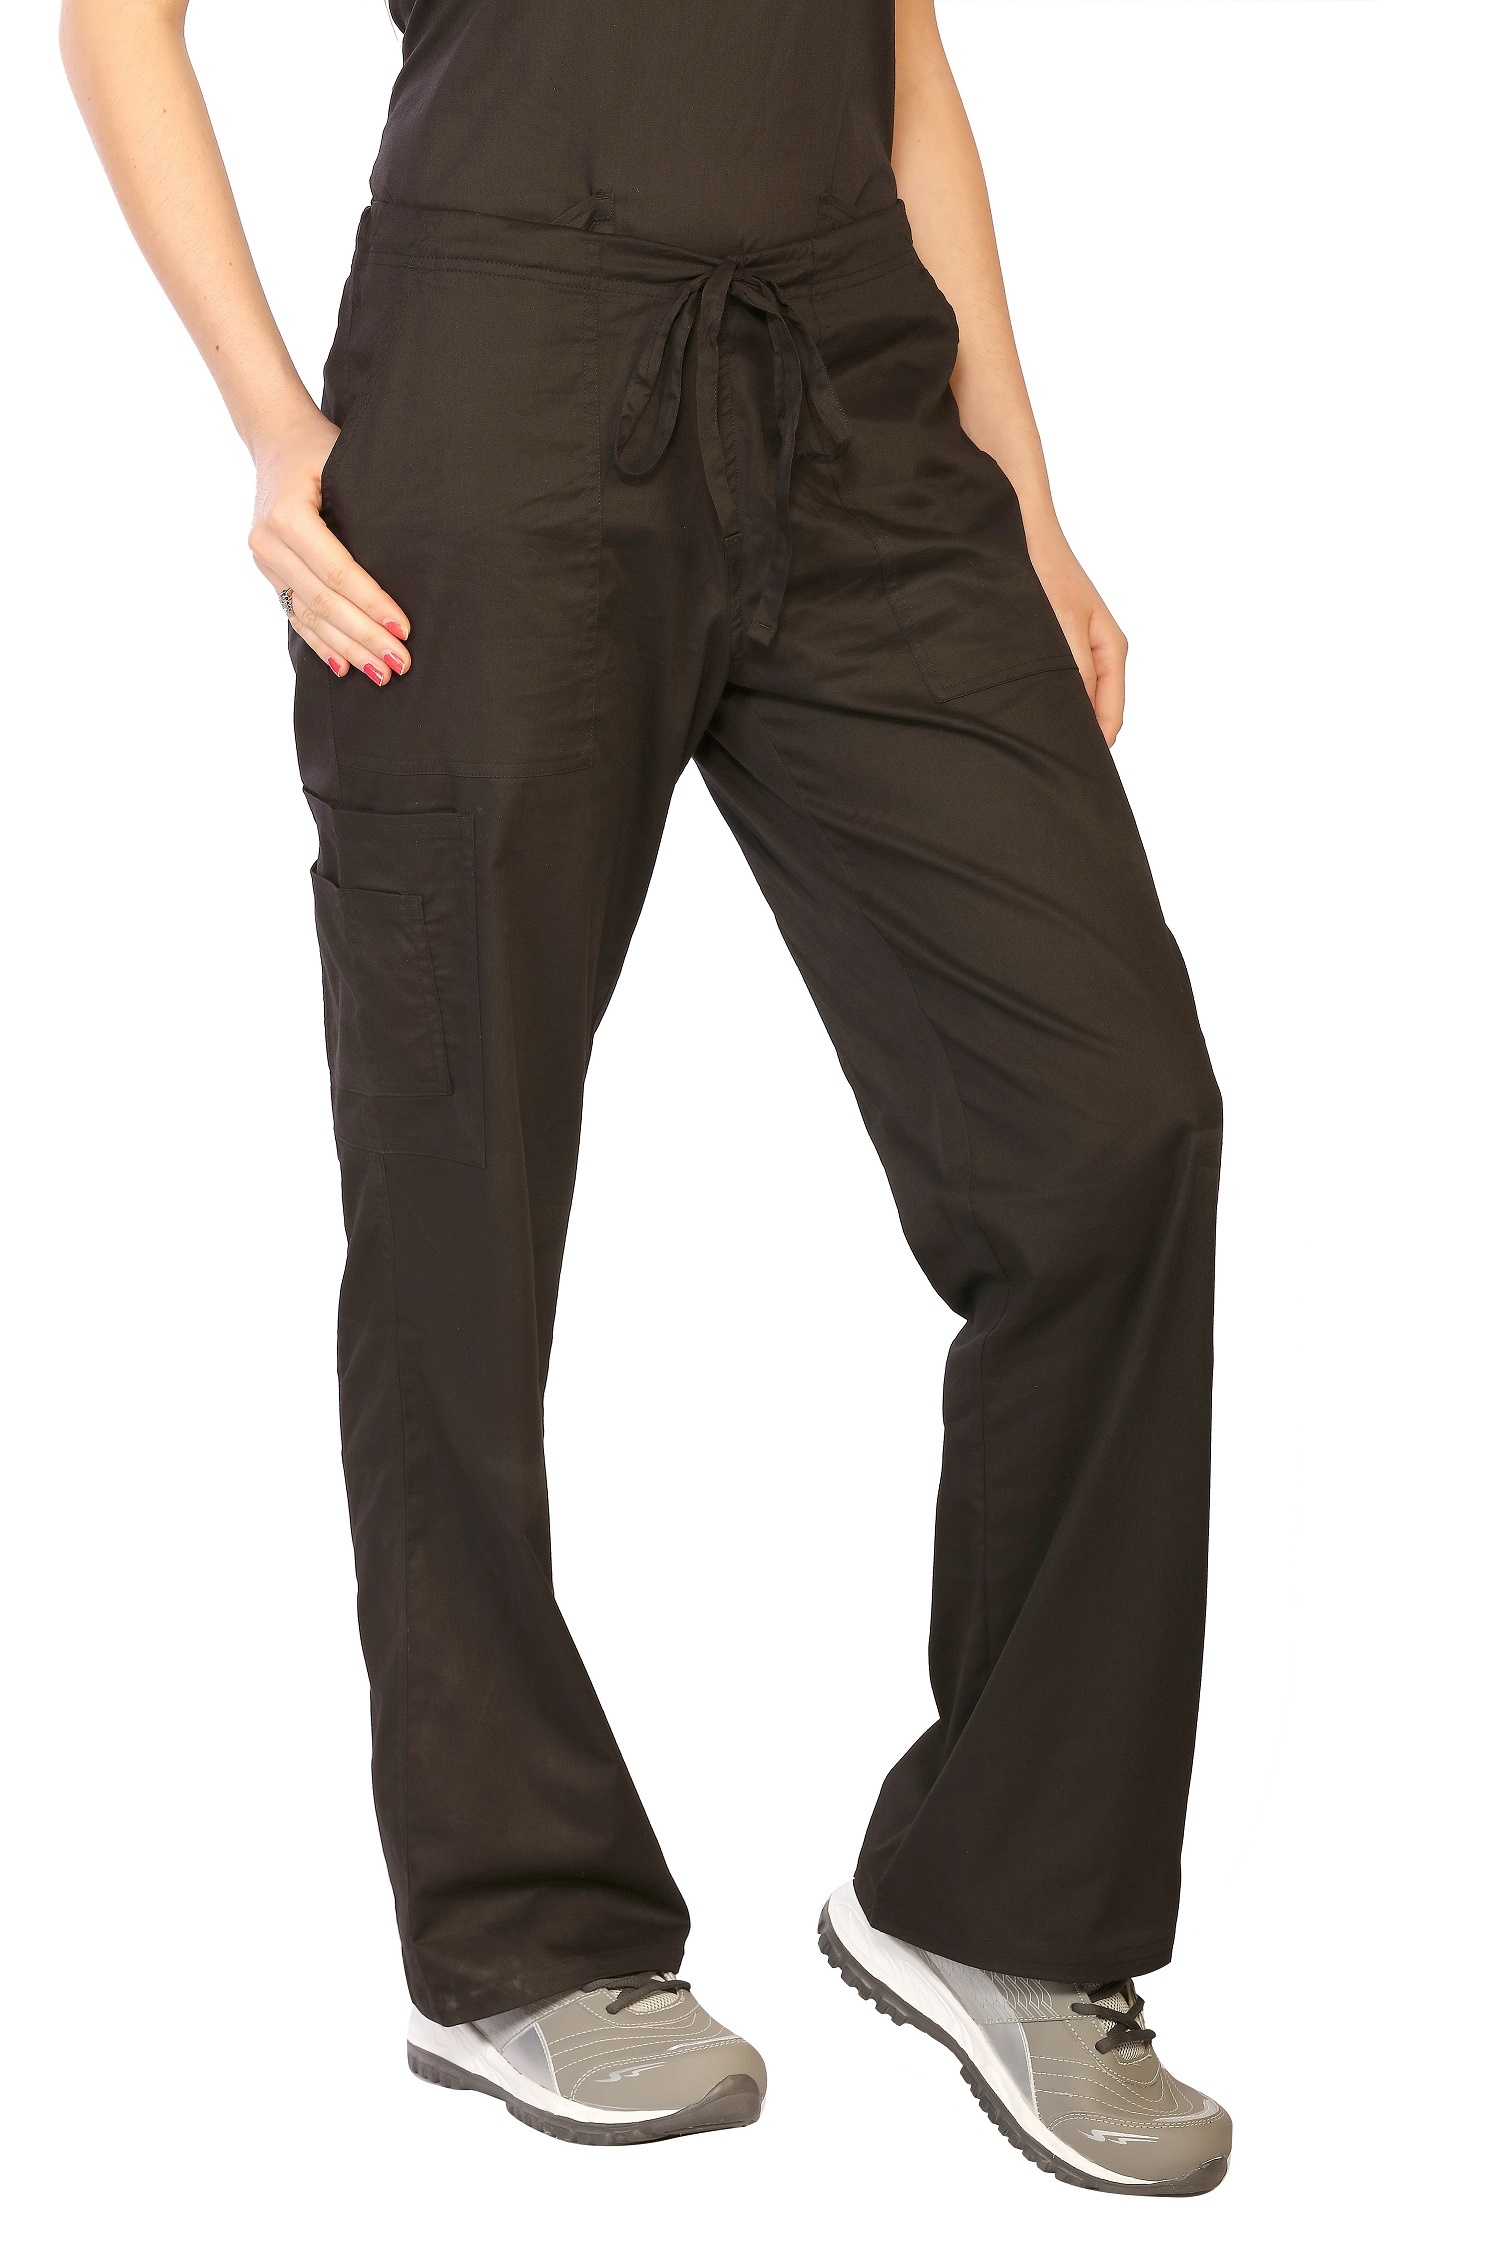 Womens Stretch Cargo Pants, LifeThreads Contego Collection